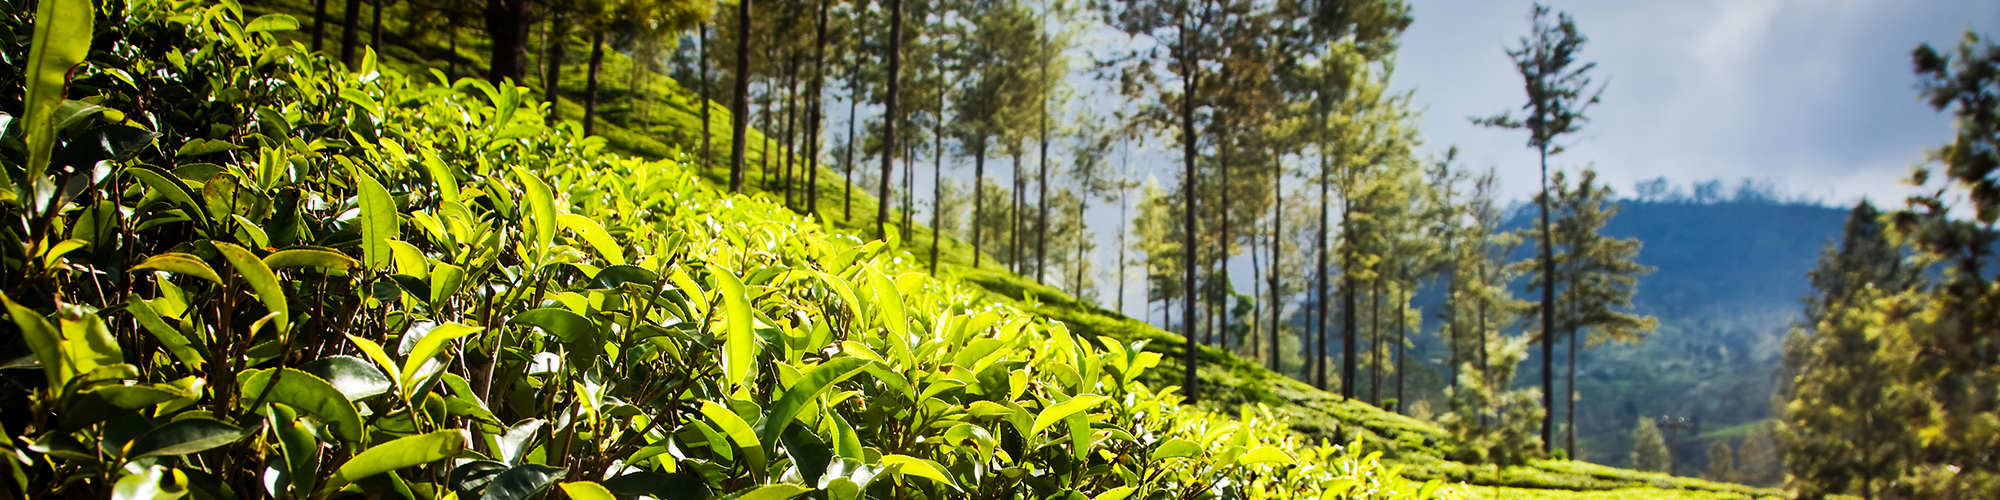 Hiking-through-tea-estates-in-Sri-Lanka